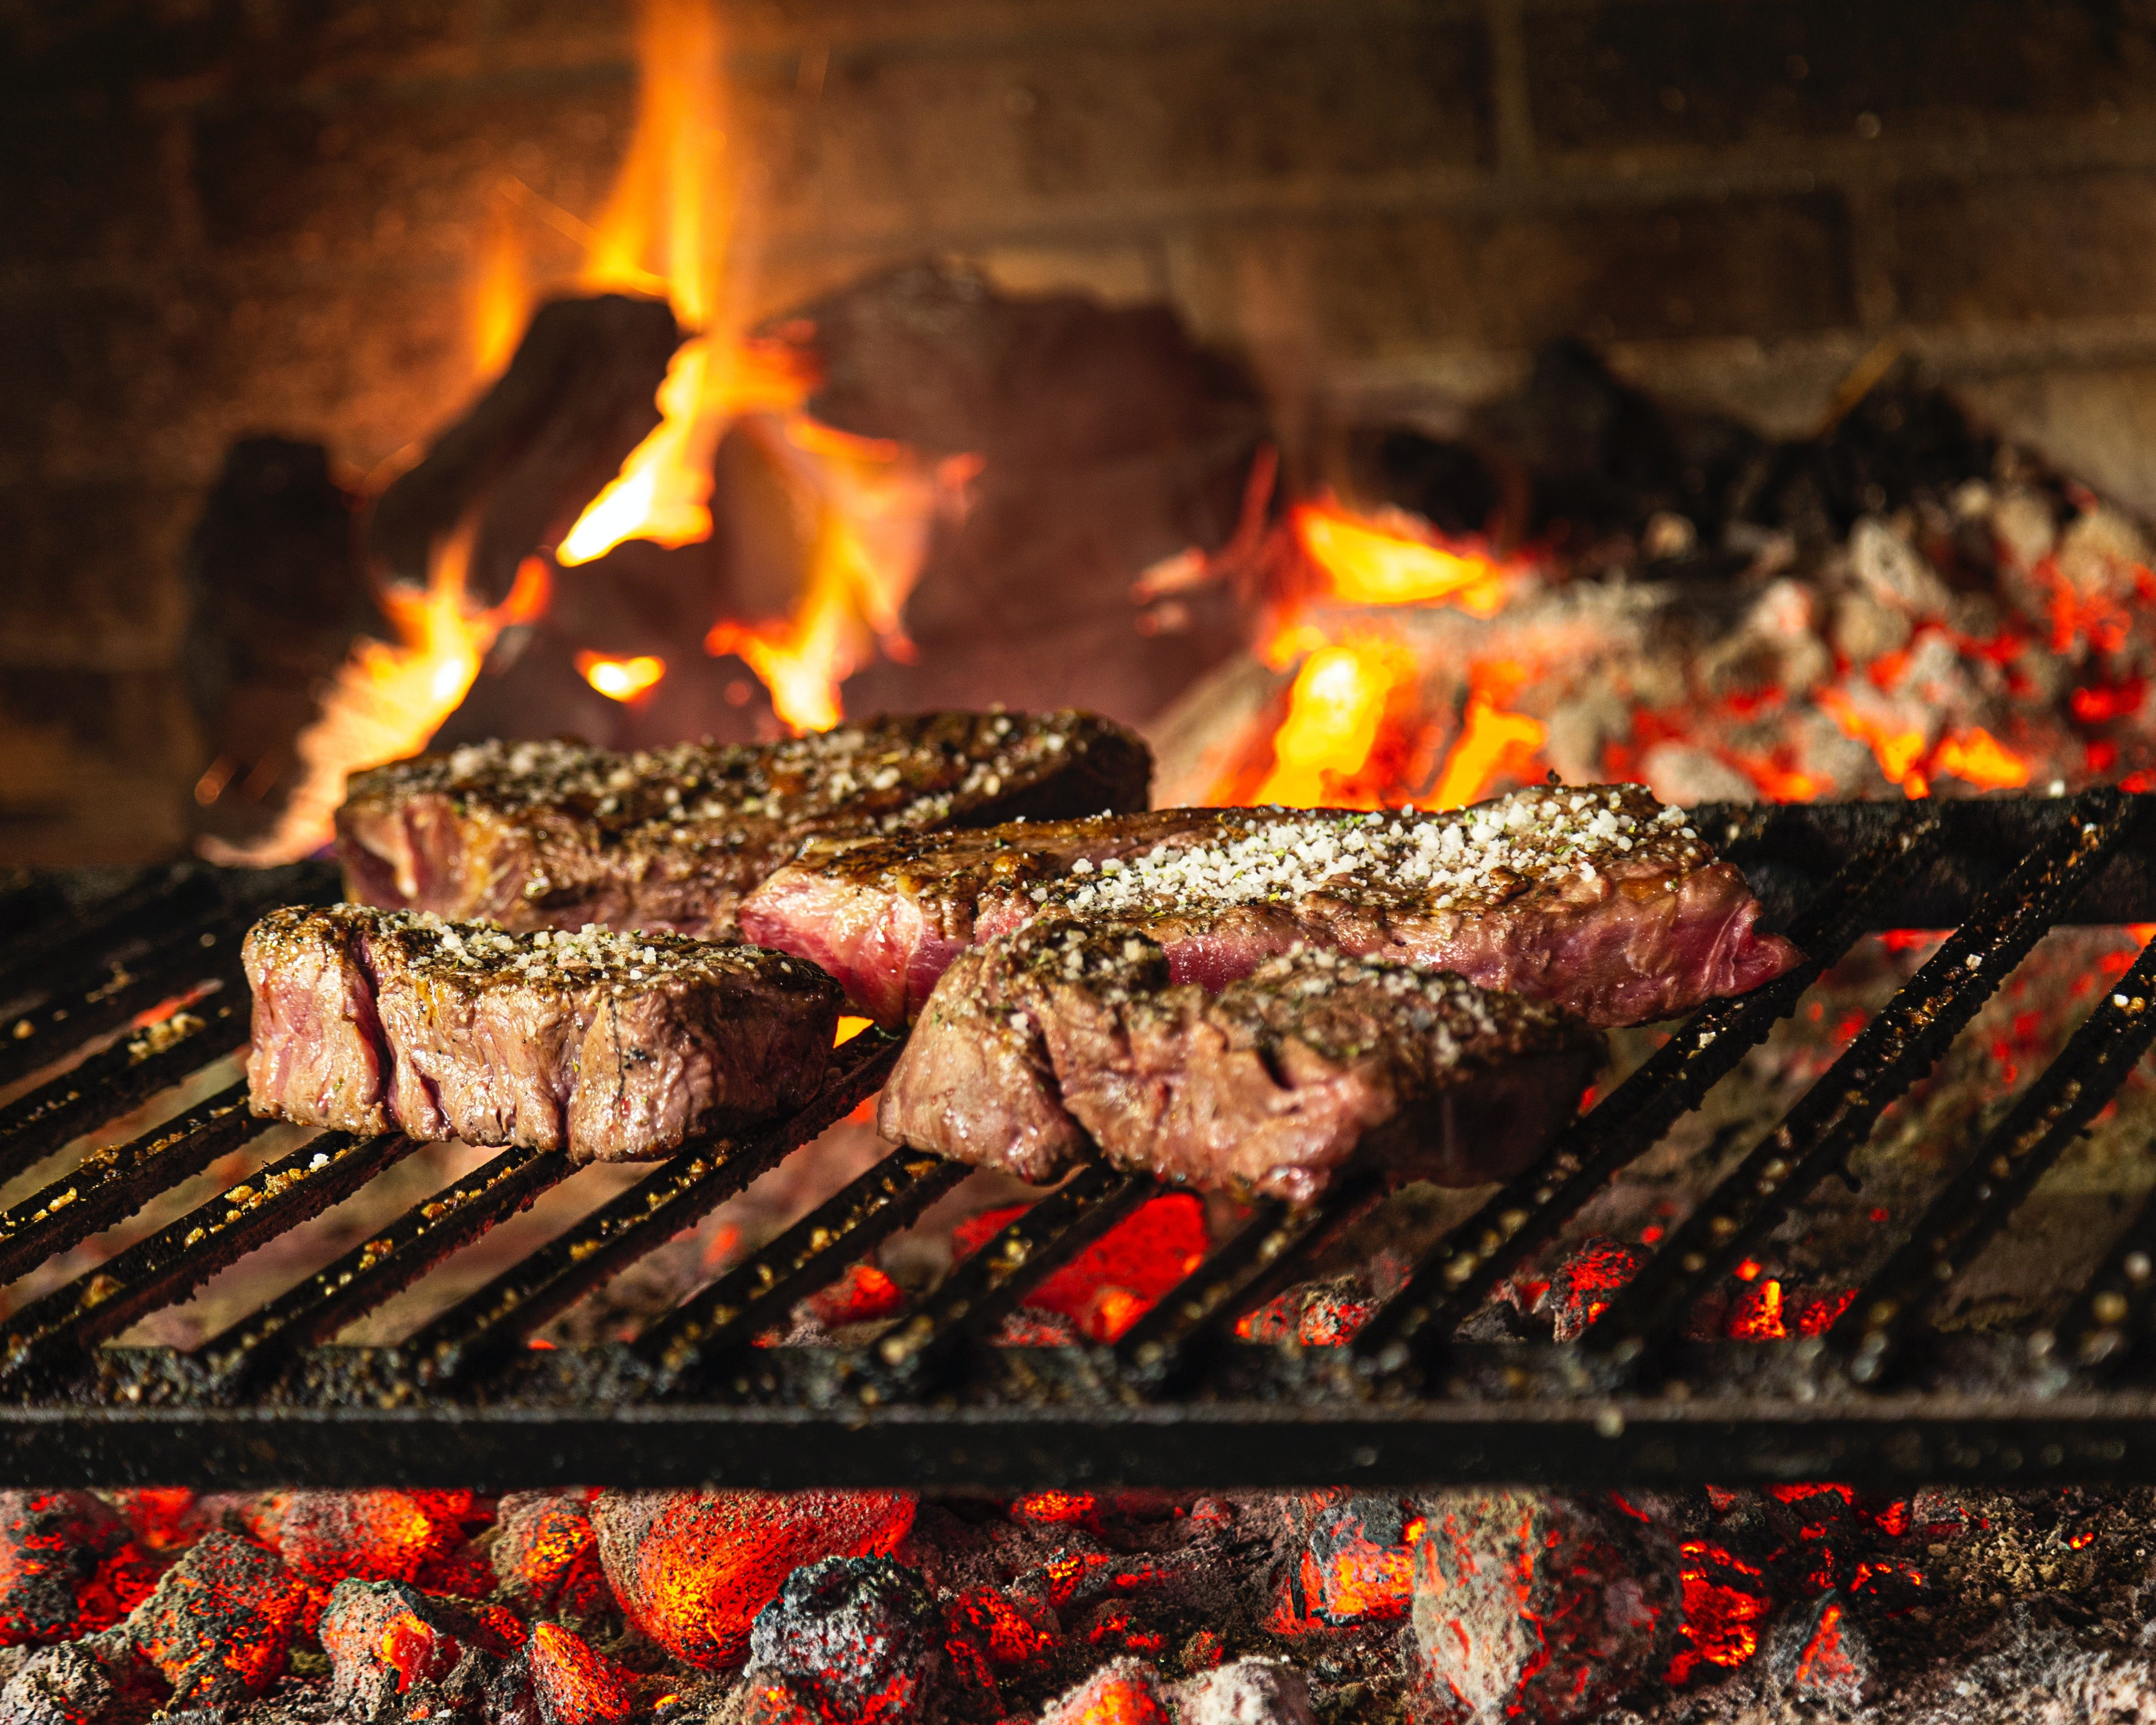 Pictured - Grilled meat on a charcoal grill | Source: Pexels